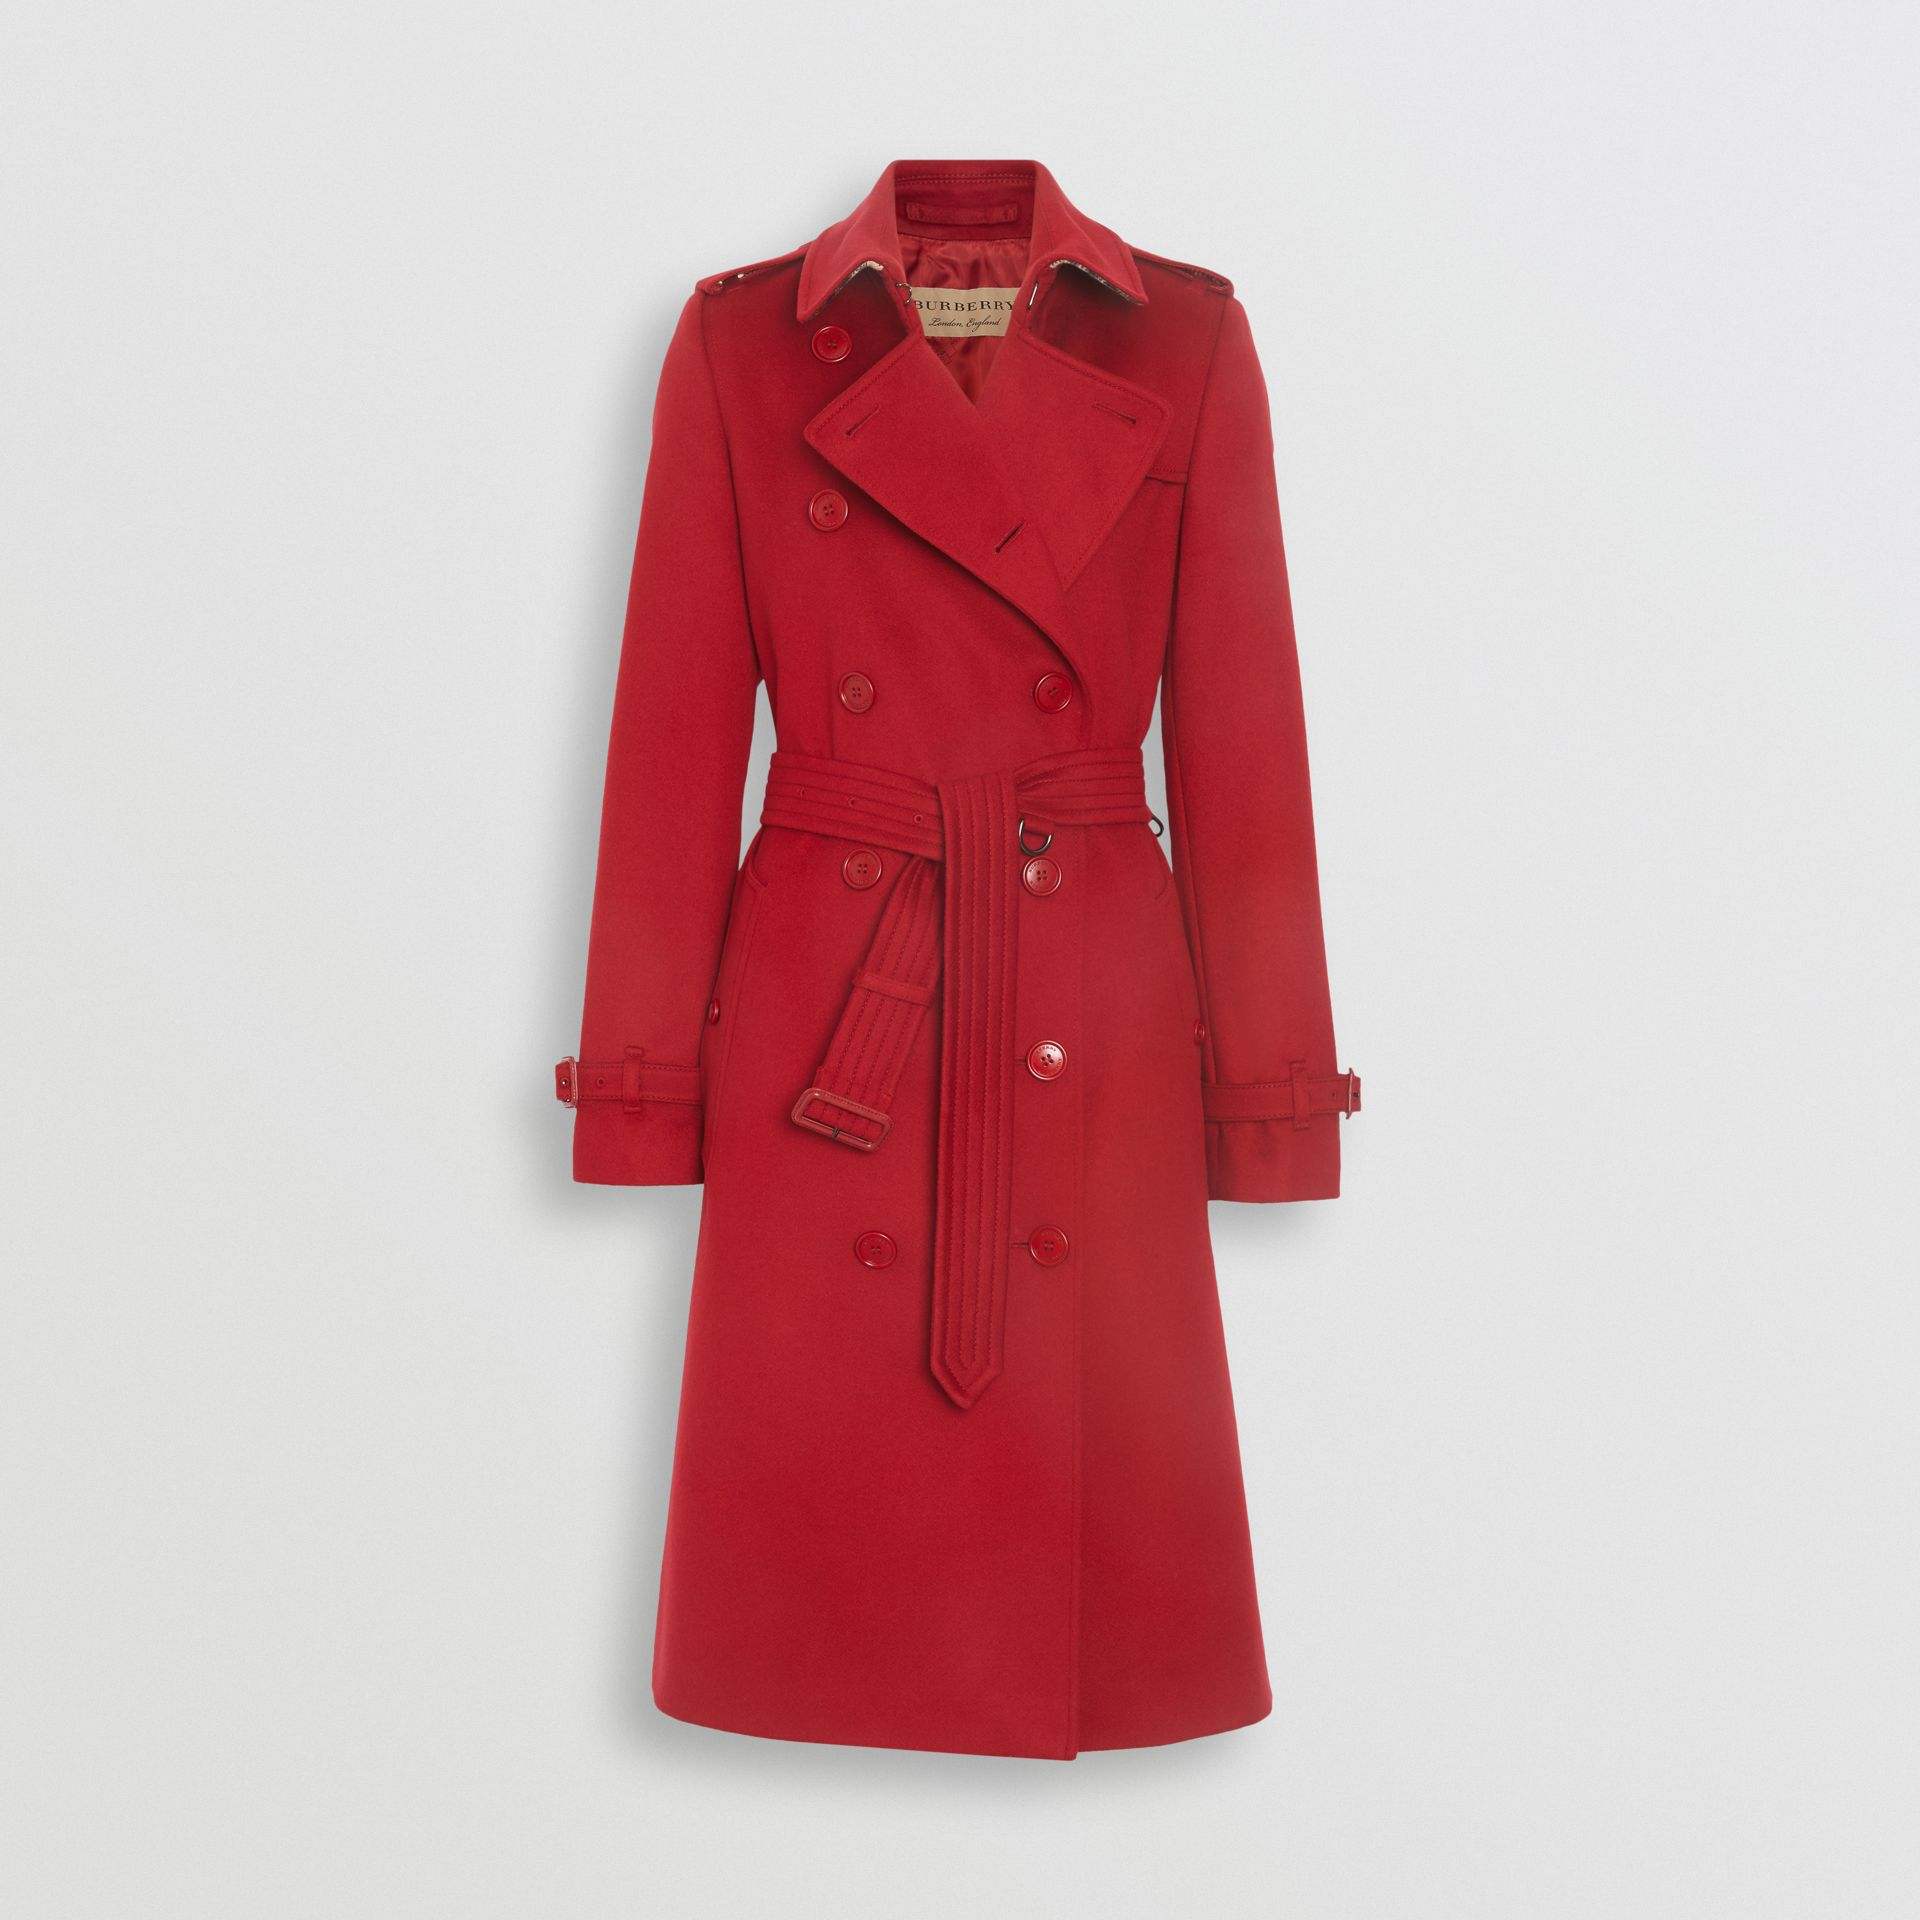 Cashmere Trench Coat in Red - Women | Burberry United Kingdom - gallery image 3